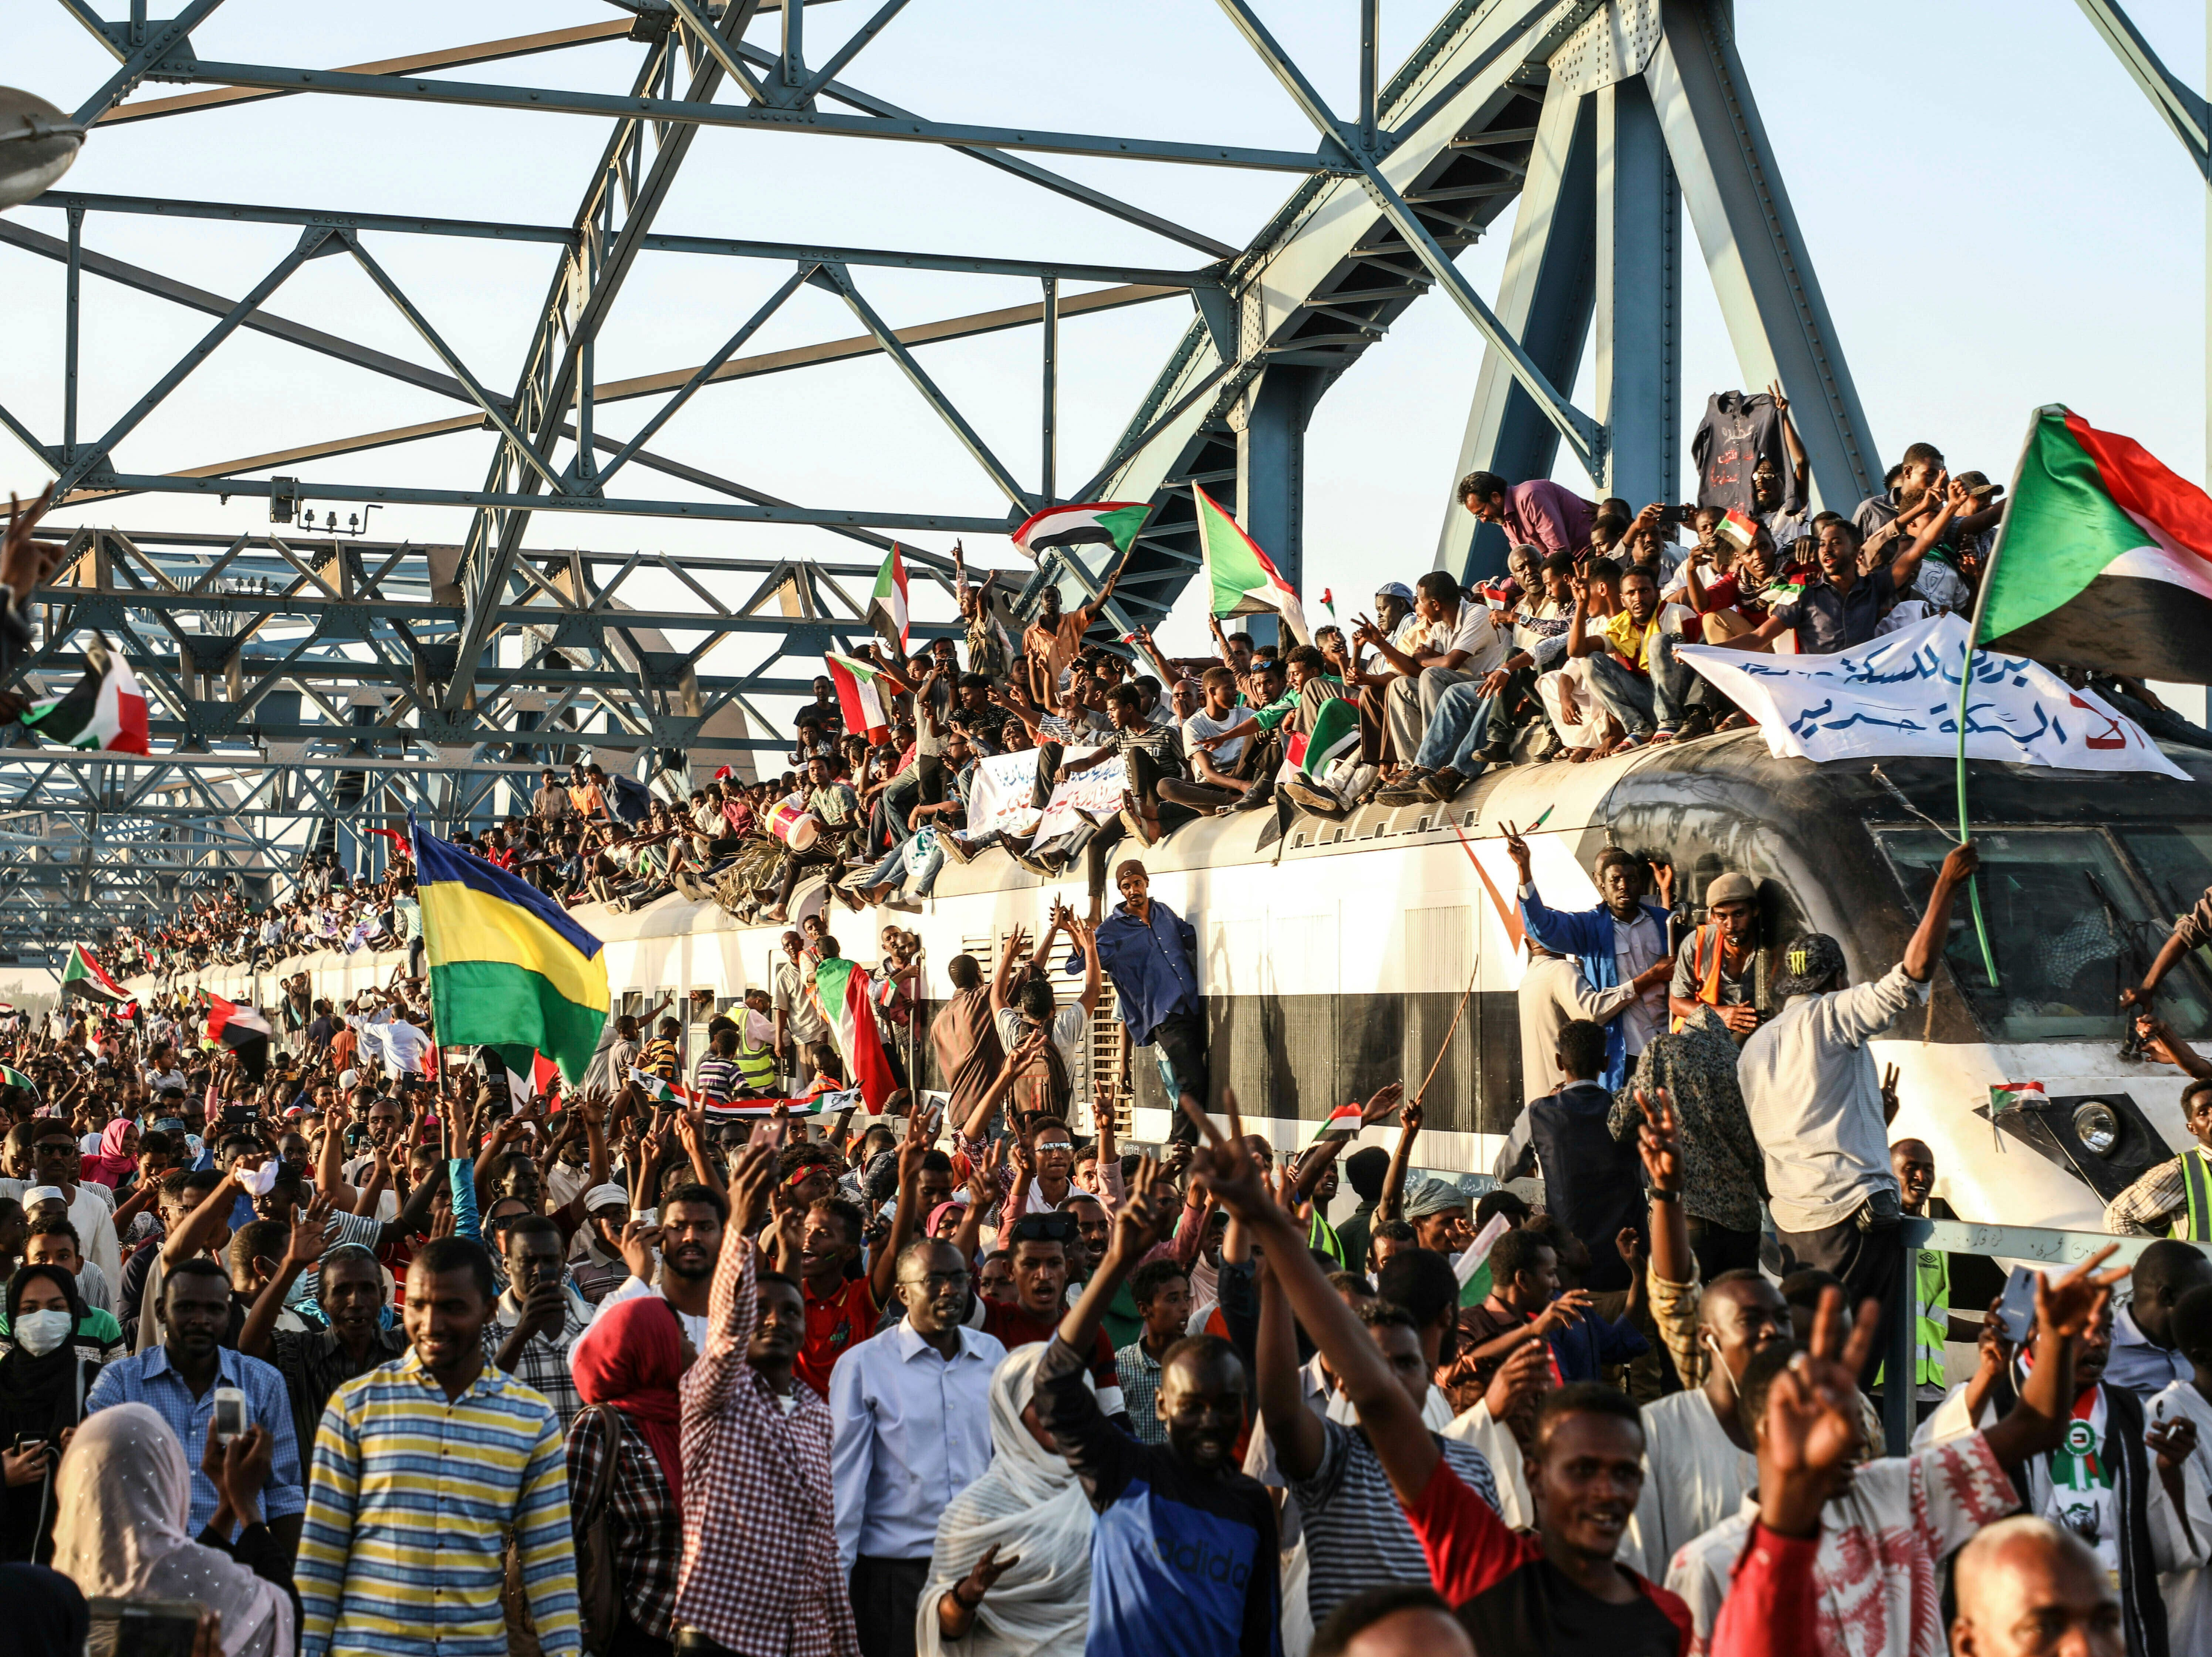 In this Tuesday, April 23, 2019, photo, Sudanese protesters crowd a train in the capital Khartoum.Activists were holding nationwide protests on Tuesday to press the military to hand over power to a civilian authority after the overthrow of President Omar al-Bashir earlier this month.